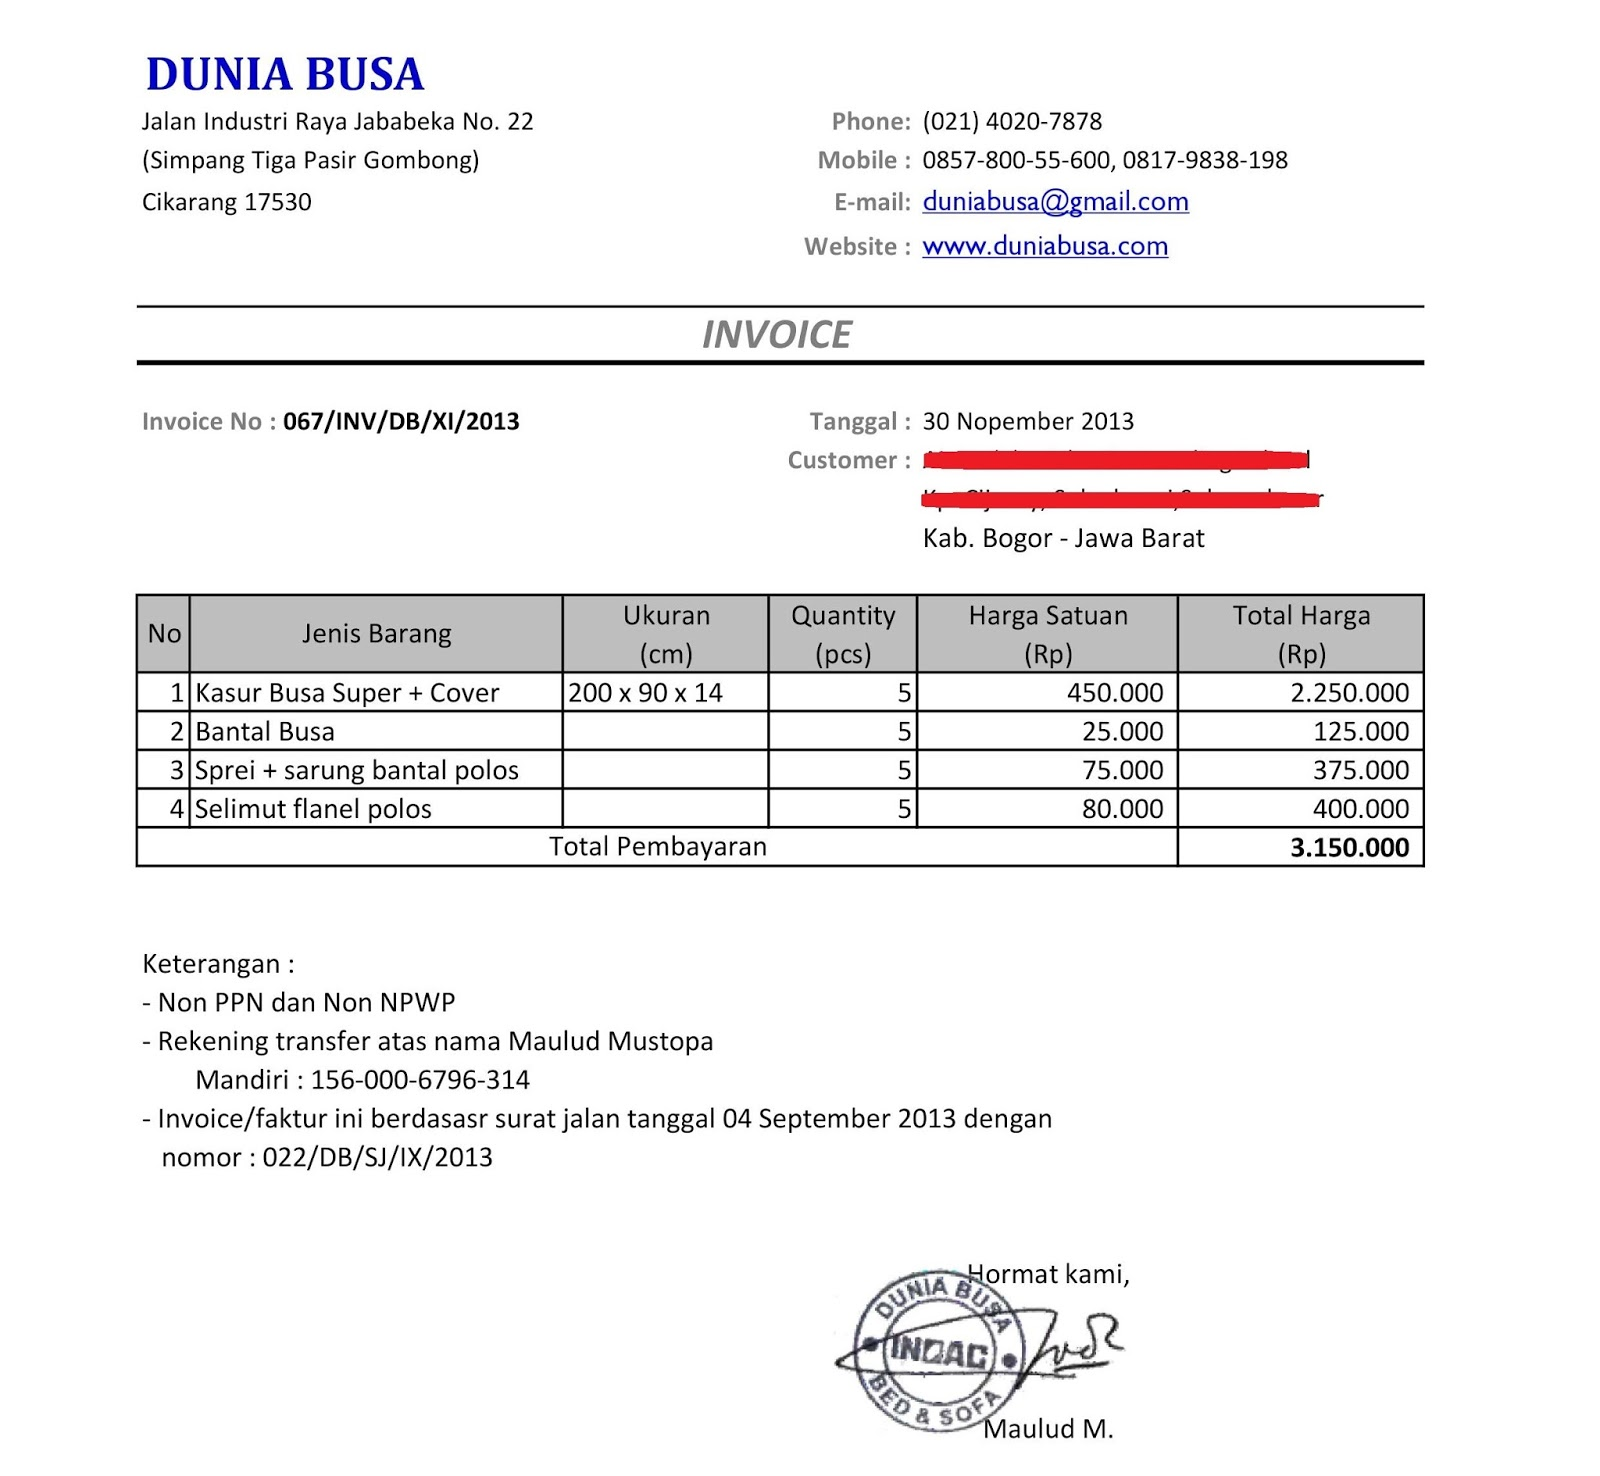 Usdgus  Inspiring Free Invoice Online  Create Invoice Online  Invoice Template  With Luxury Contoh Format Invoice Atau Surat Tagihan  Brankas Arsip  Free Invoice Online With Amusing Toyota Corolla Invoice Price Also My Deluxe Invoices In Addition Invoicing Through Paypal And Print Invoices As Well As Dealer Invoice Cost Additionally Google Invoice Templates From Sklepco With Usdgus  Luxury Free Invoice Online  Create Invoice Online  Invoice Template  With Amusing Contoh Format Invoice Atau Surat Tagihan  Brankas Arsip  Free Invoice Online And Inspiring Toyota Corolla Invoice Price Also My Deluxe Invoices In Addition Invoicing Through Paypal From Sklepco